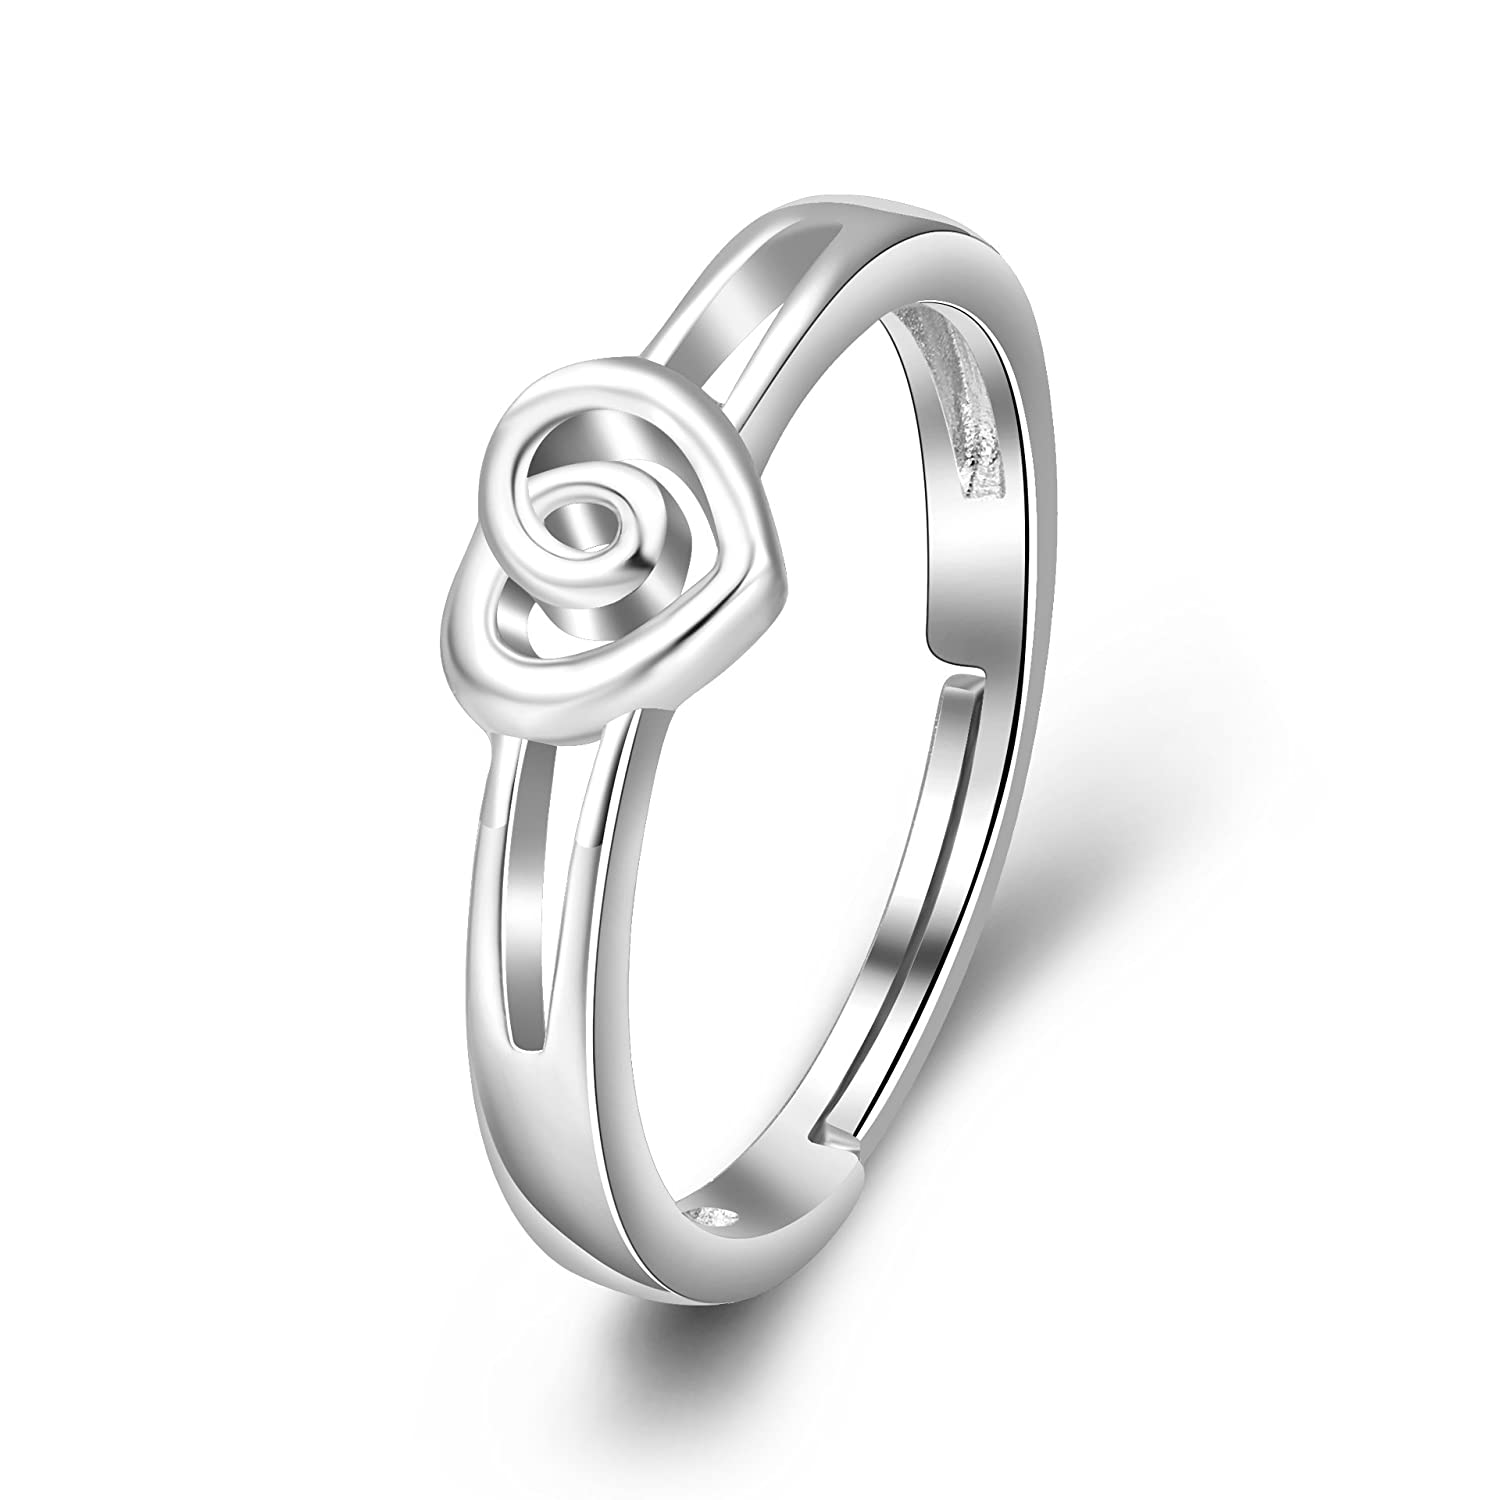 AXELUNA 925 Sterling Silver Heart Promise Love Knot Ring Adjustable Jewelry for Women Girls Size 6 7 8